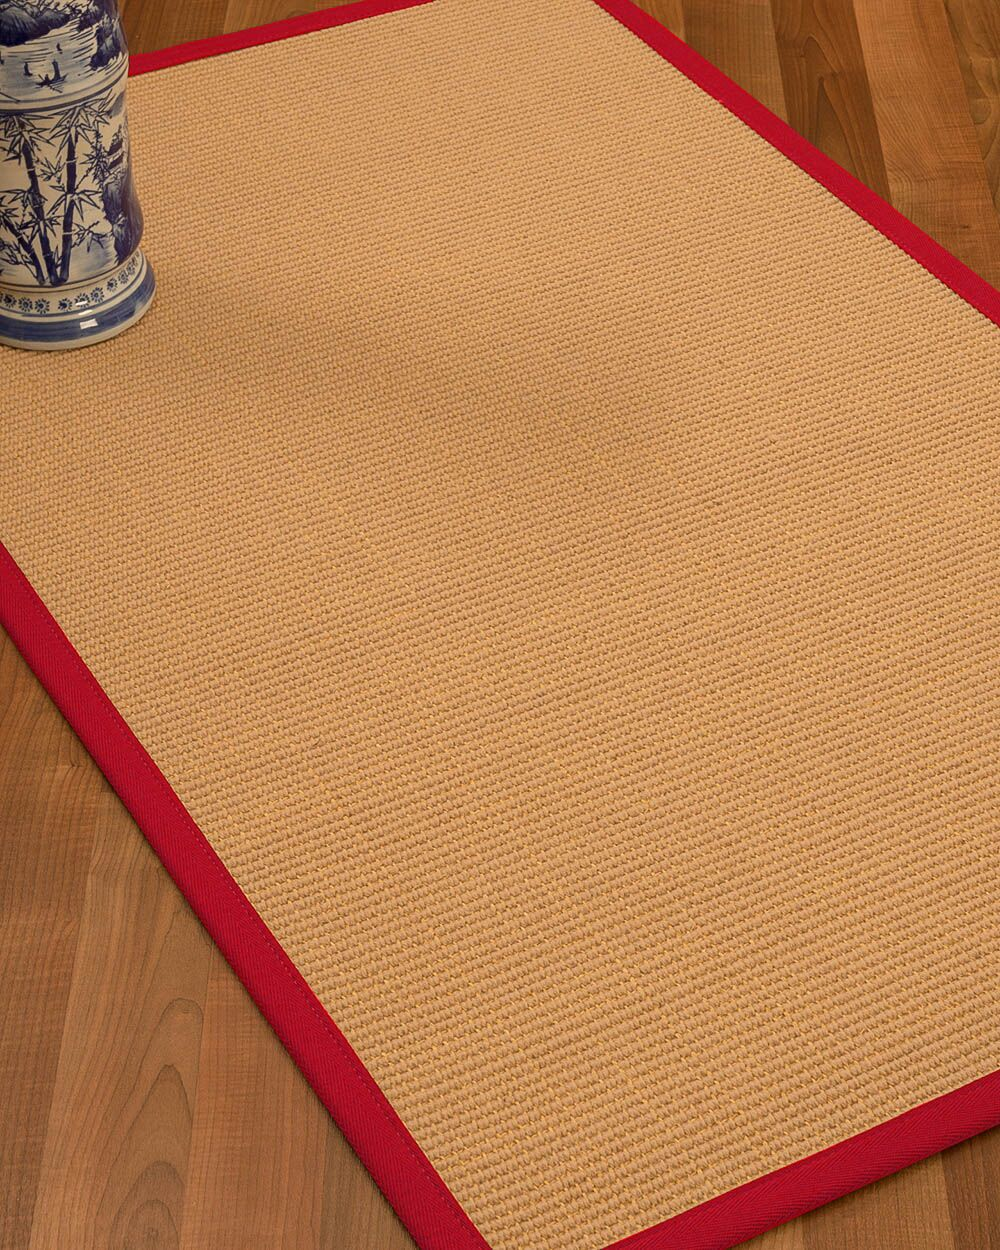 Lafayette Border Hand-Woven Wool Beige/Red Area Rug Rug Size: Rectangle 6' x 9', Rug Pad Included: Yes